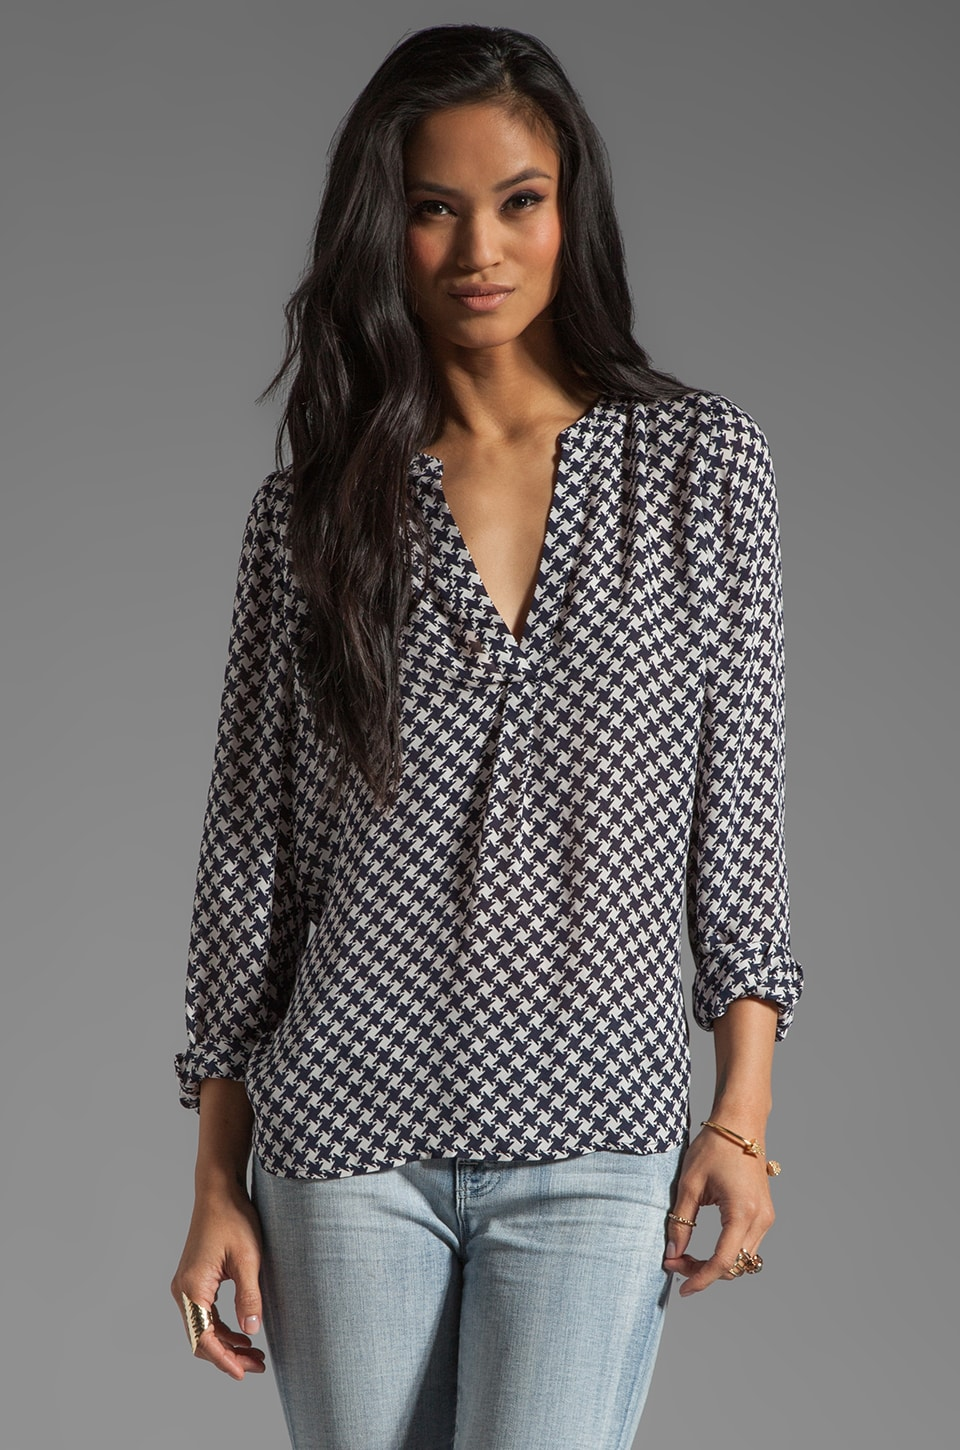 Joie Peterson B Houndstooth Blouse in Dark Navy